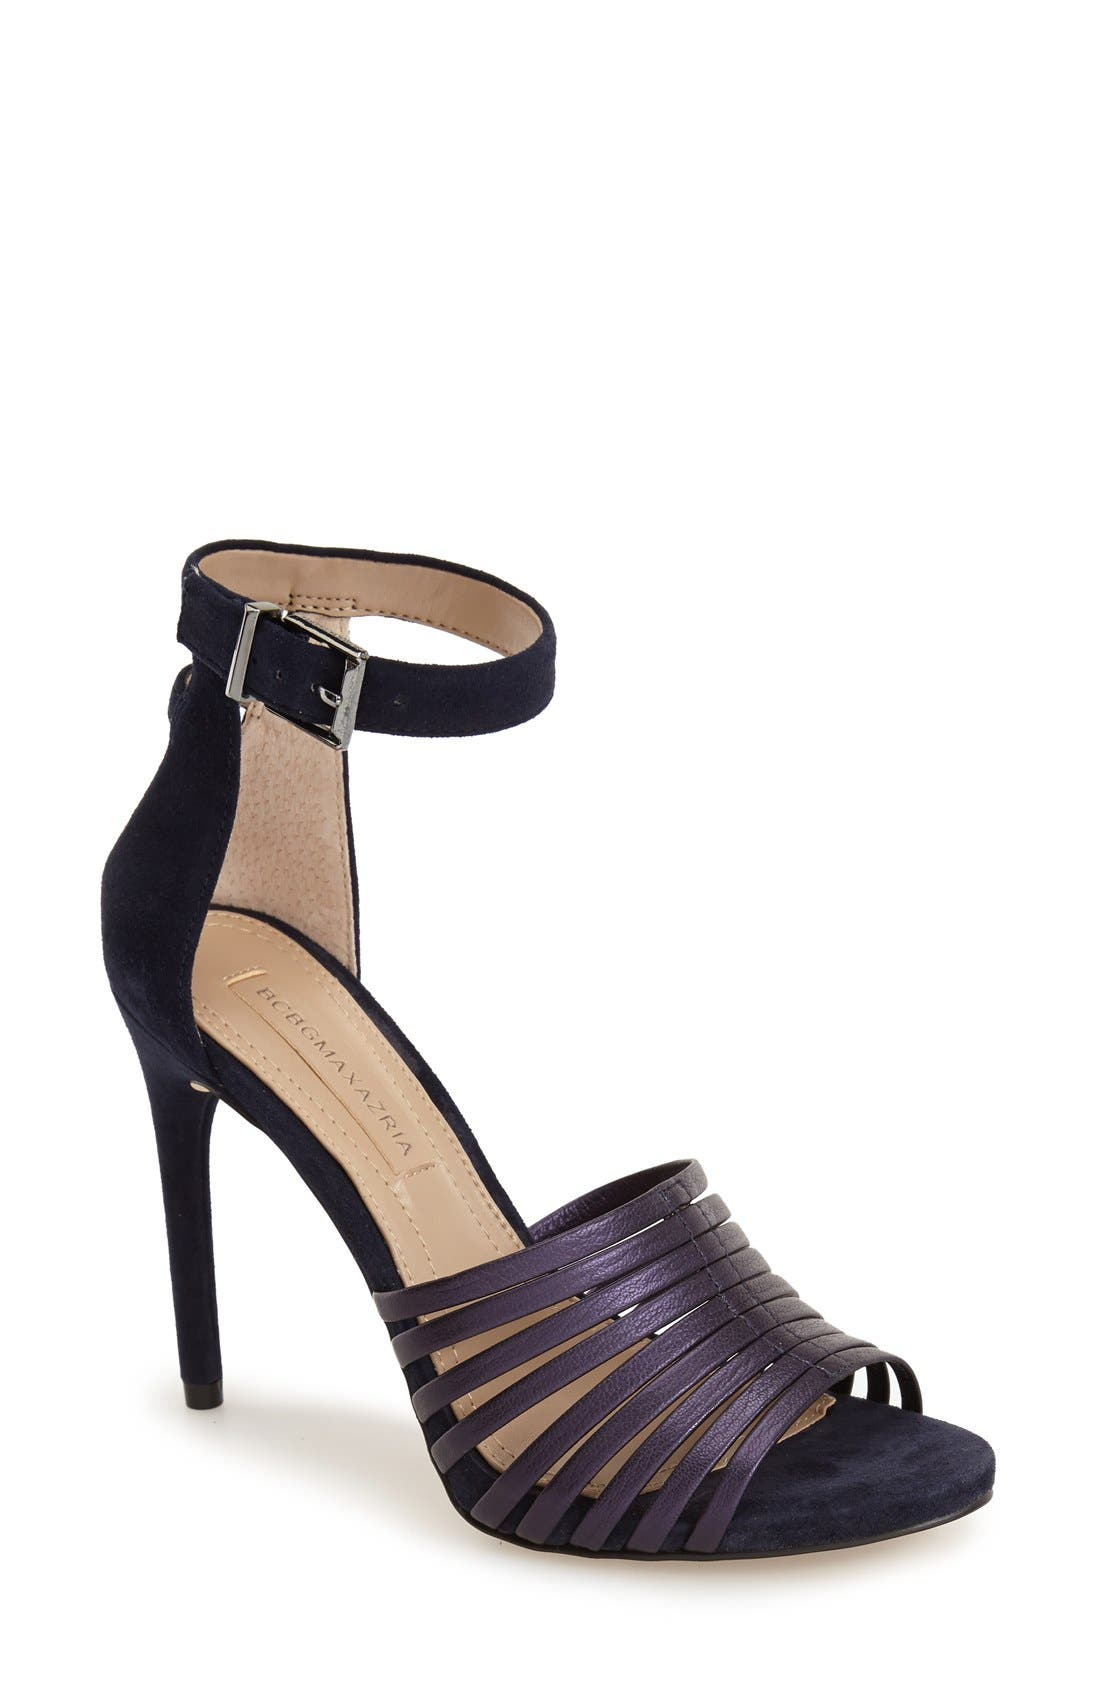 Alternate Image 1 Selected - BCBCMAXAZRIA 'Dena' Strappy Sandal (Women)